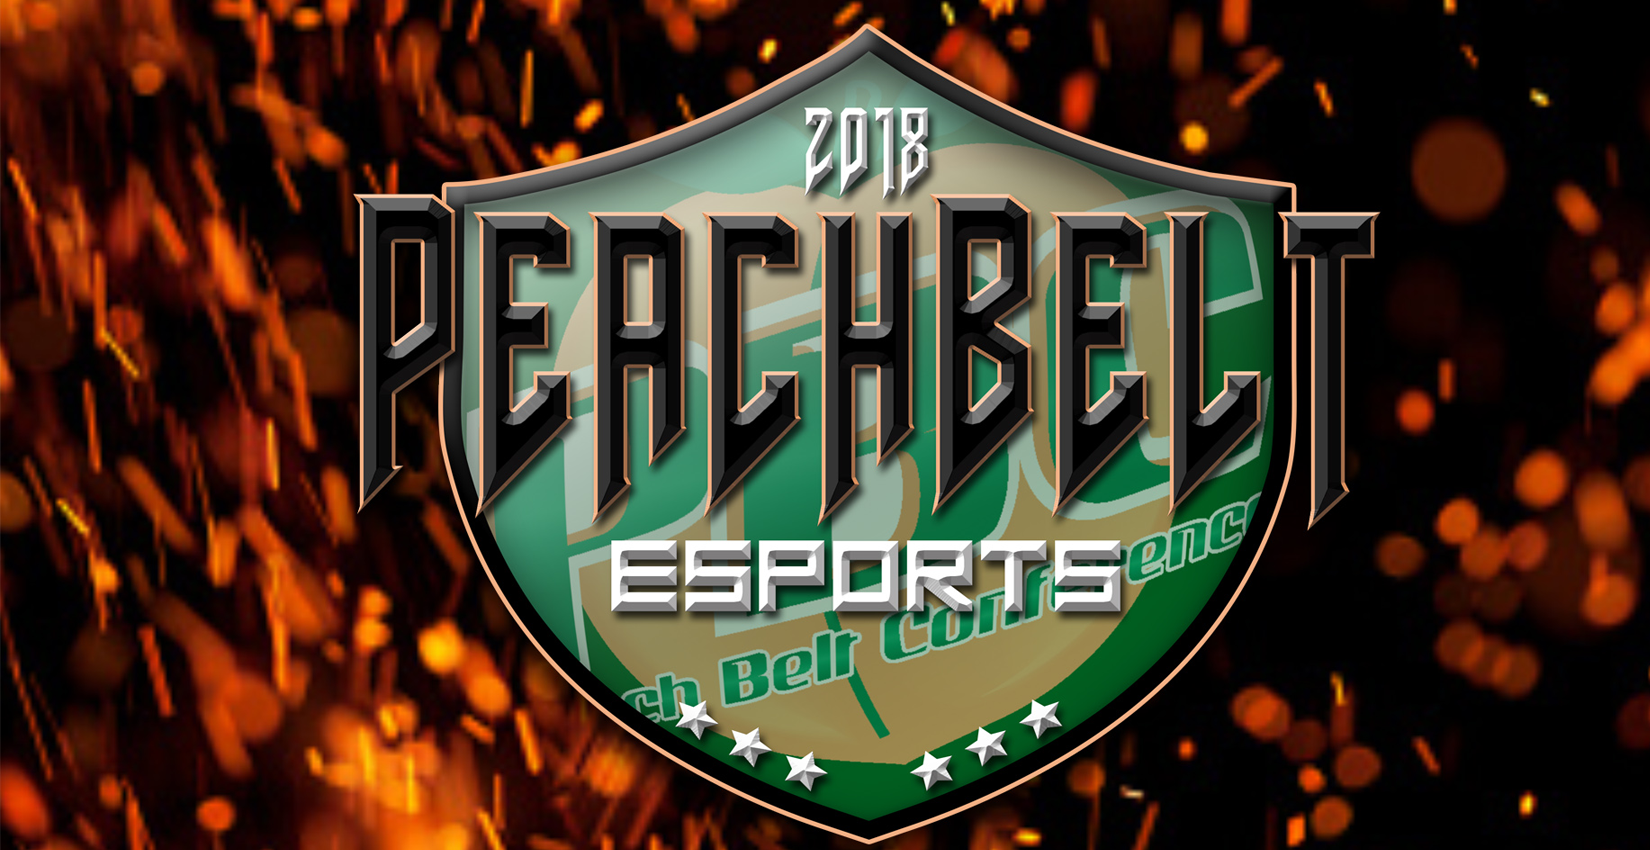 Peach Belt Conference ESports